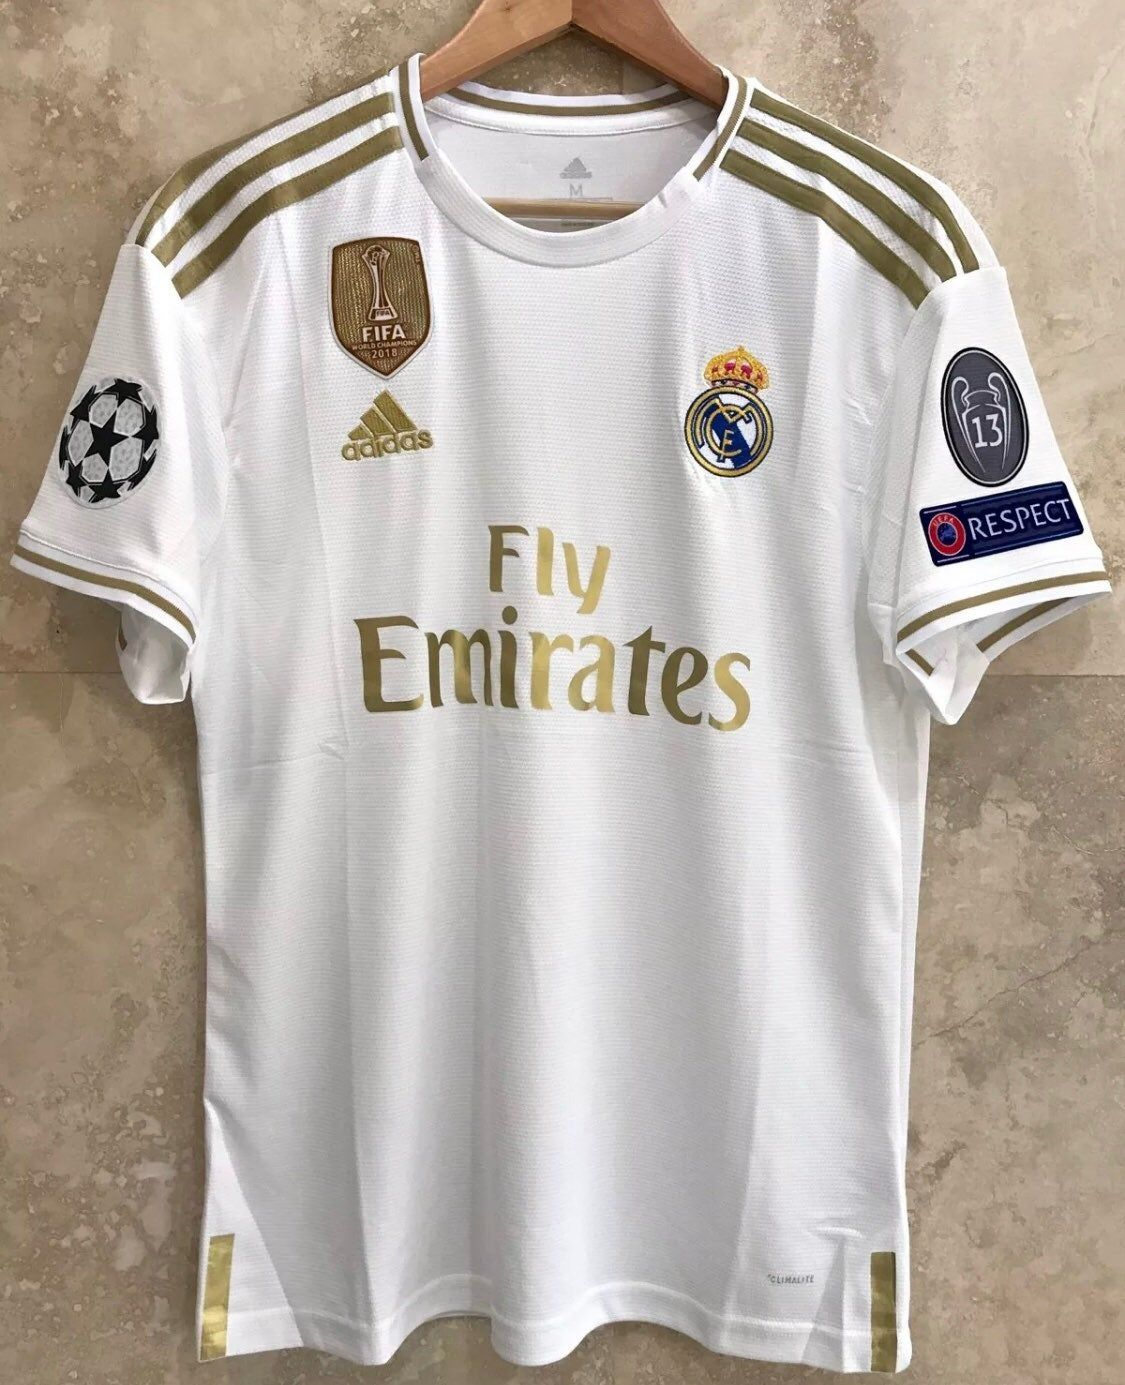 New Real Madrid Home Jersey 2019 20 On Mercari Real Madrid Jersey Madrid